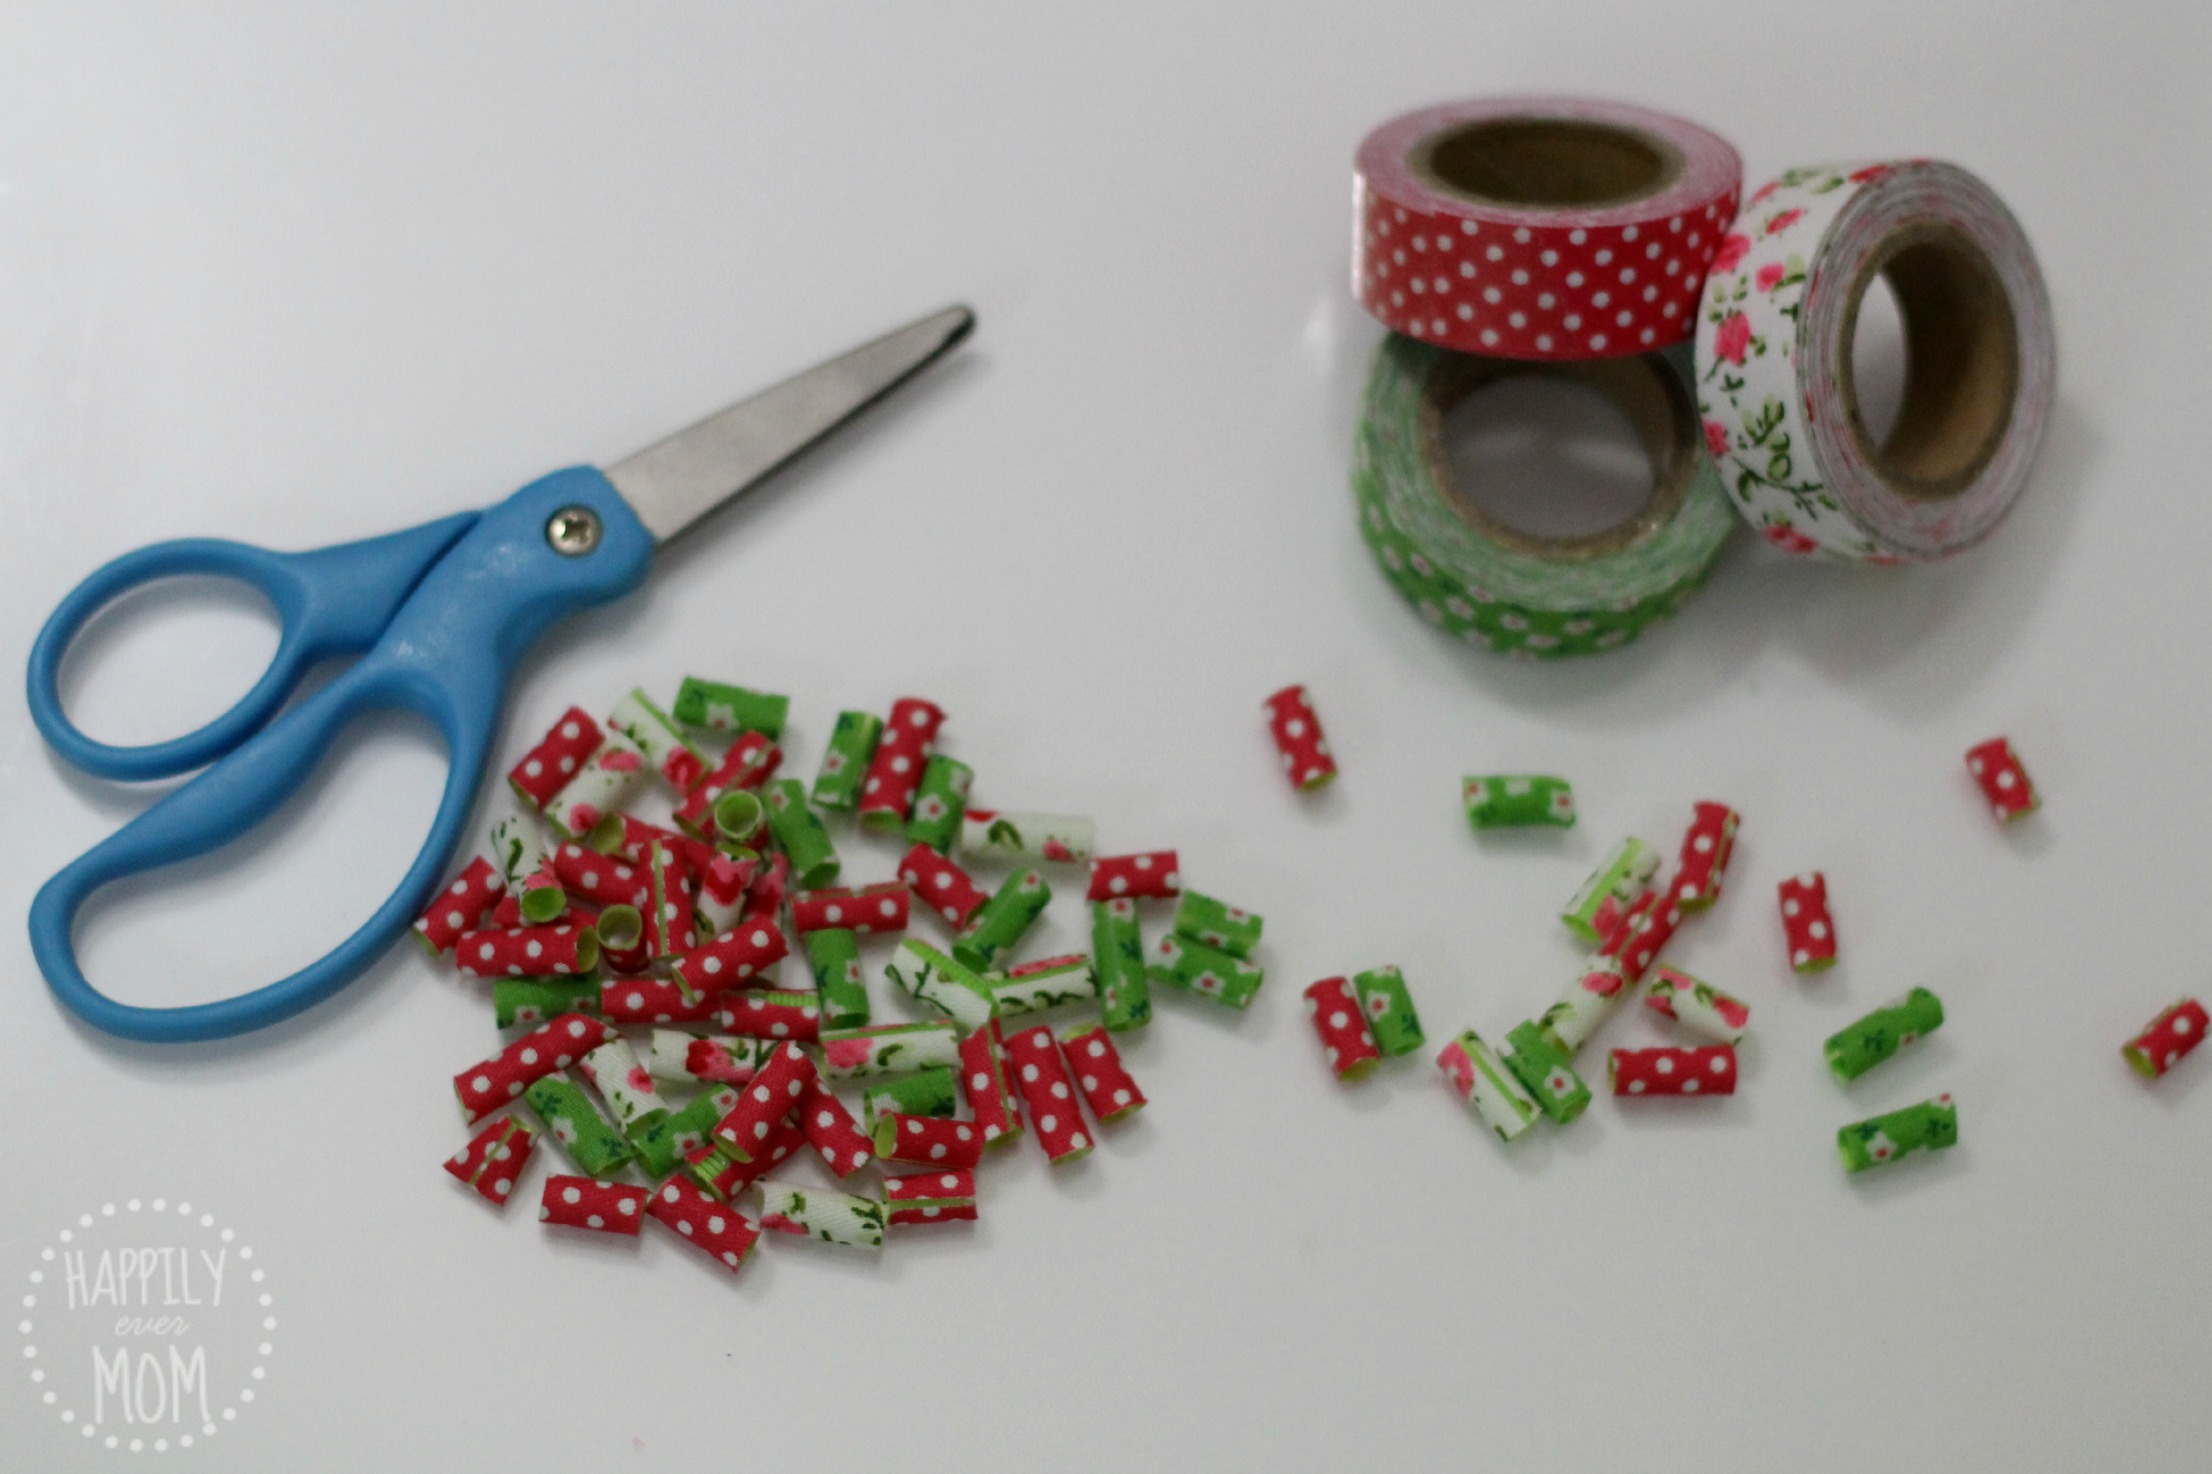 DIY Fabric Beads} Making Jewelry with Kids - Happily Ever Mom